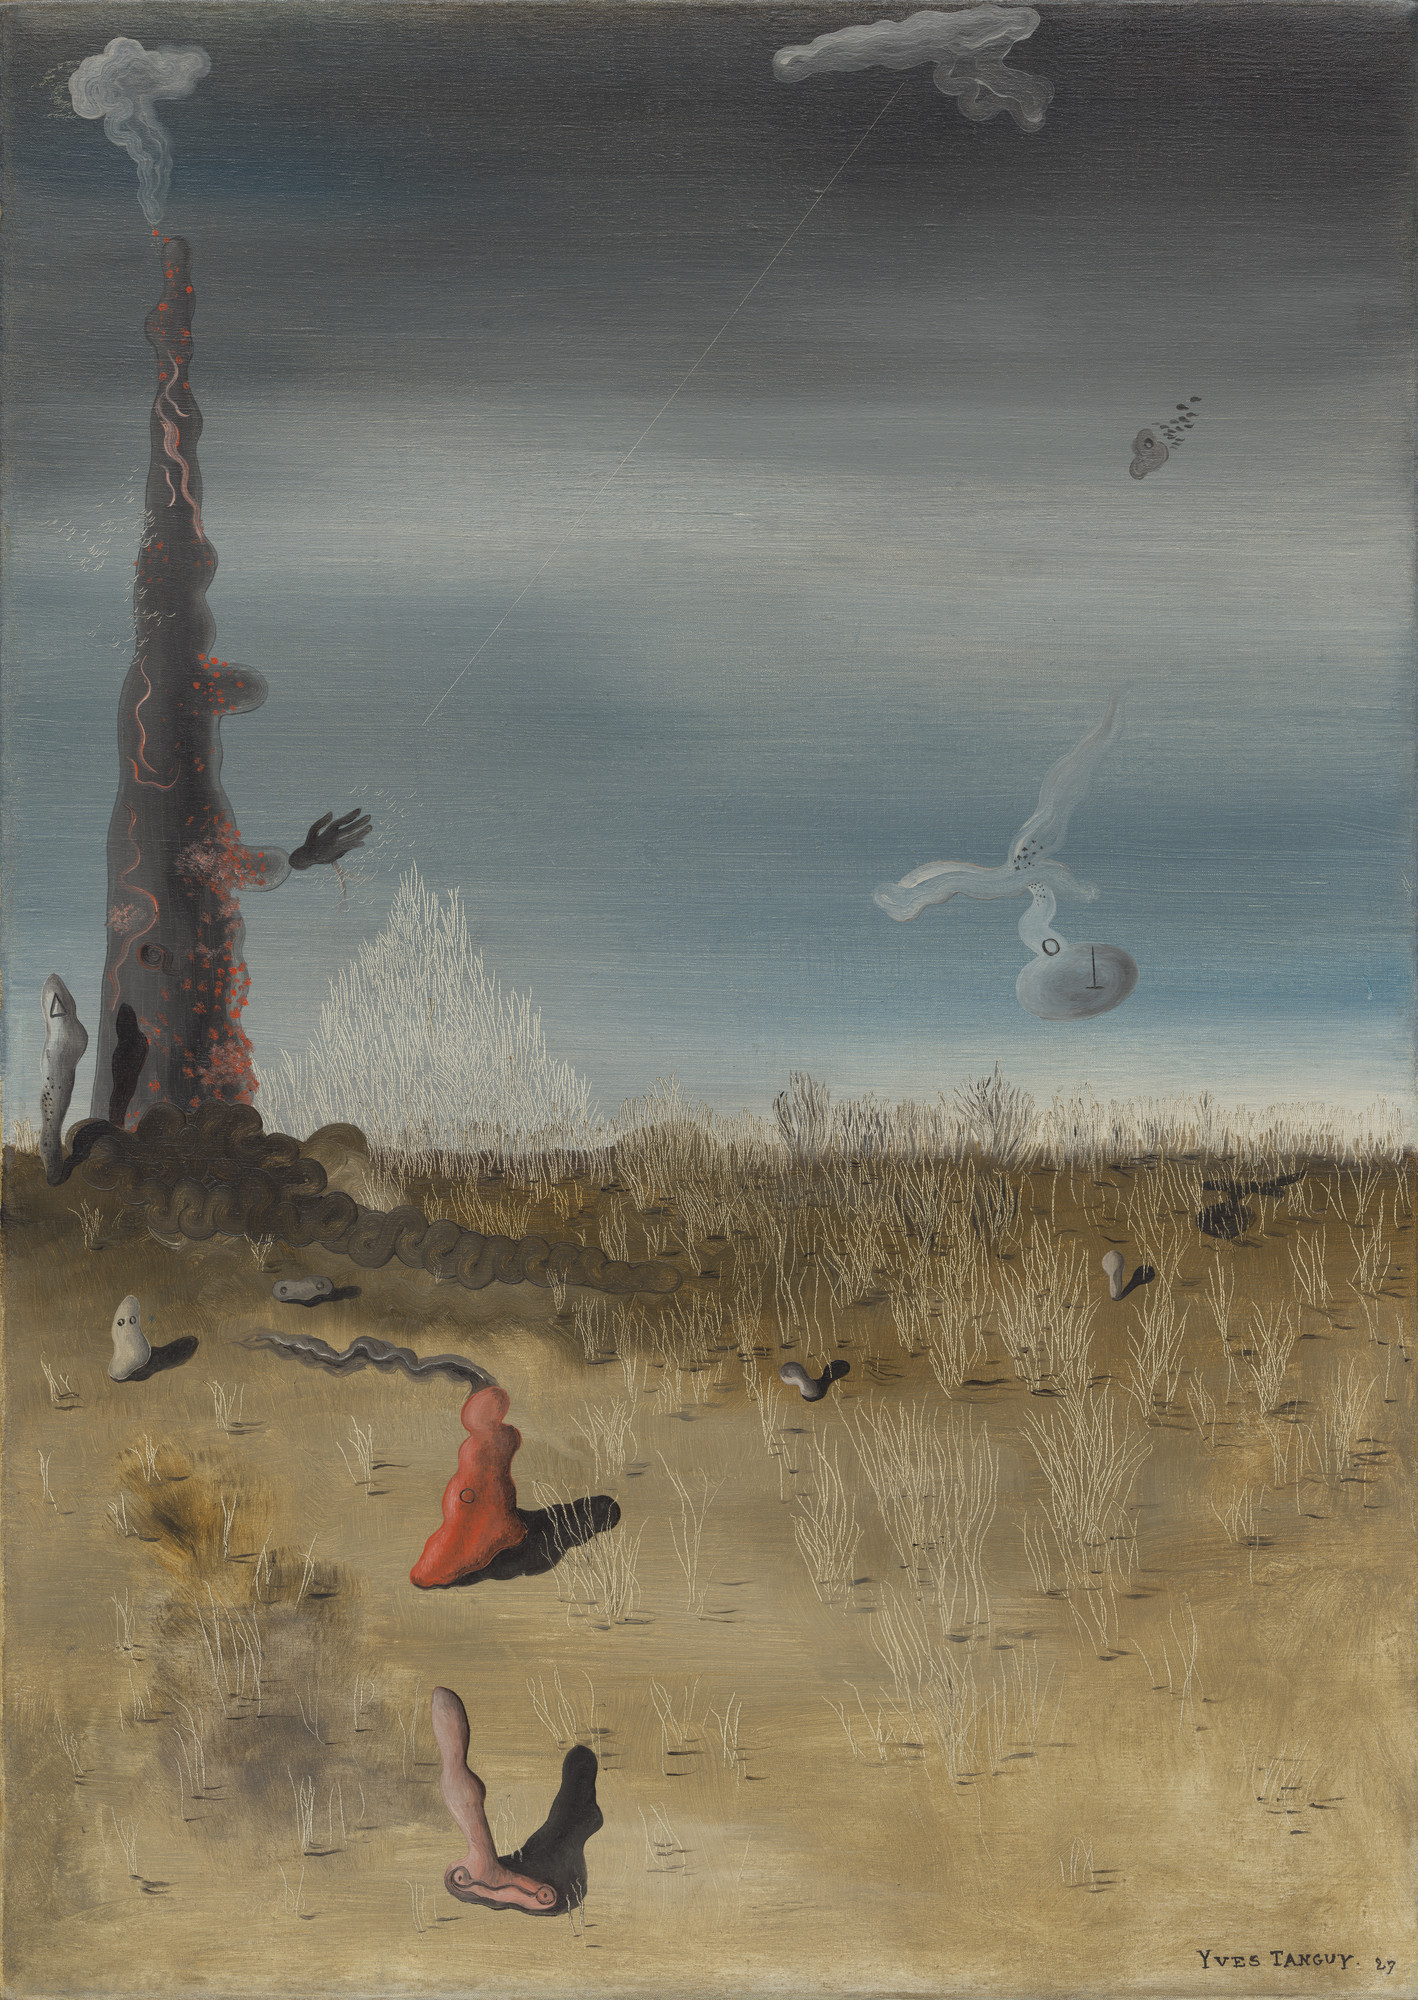 Yves Tanguy. Extinction of Useless Lights. 1927